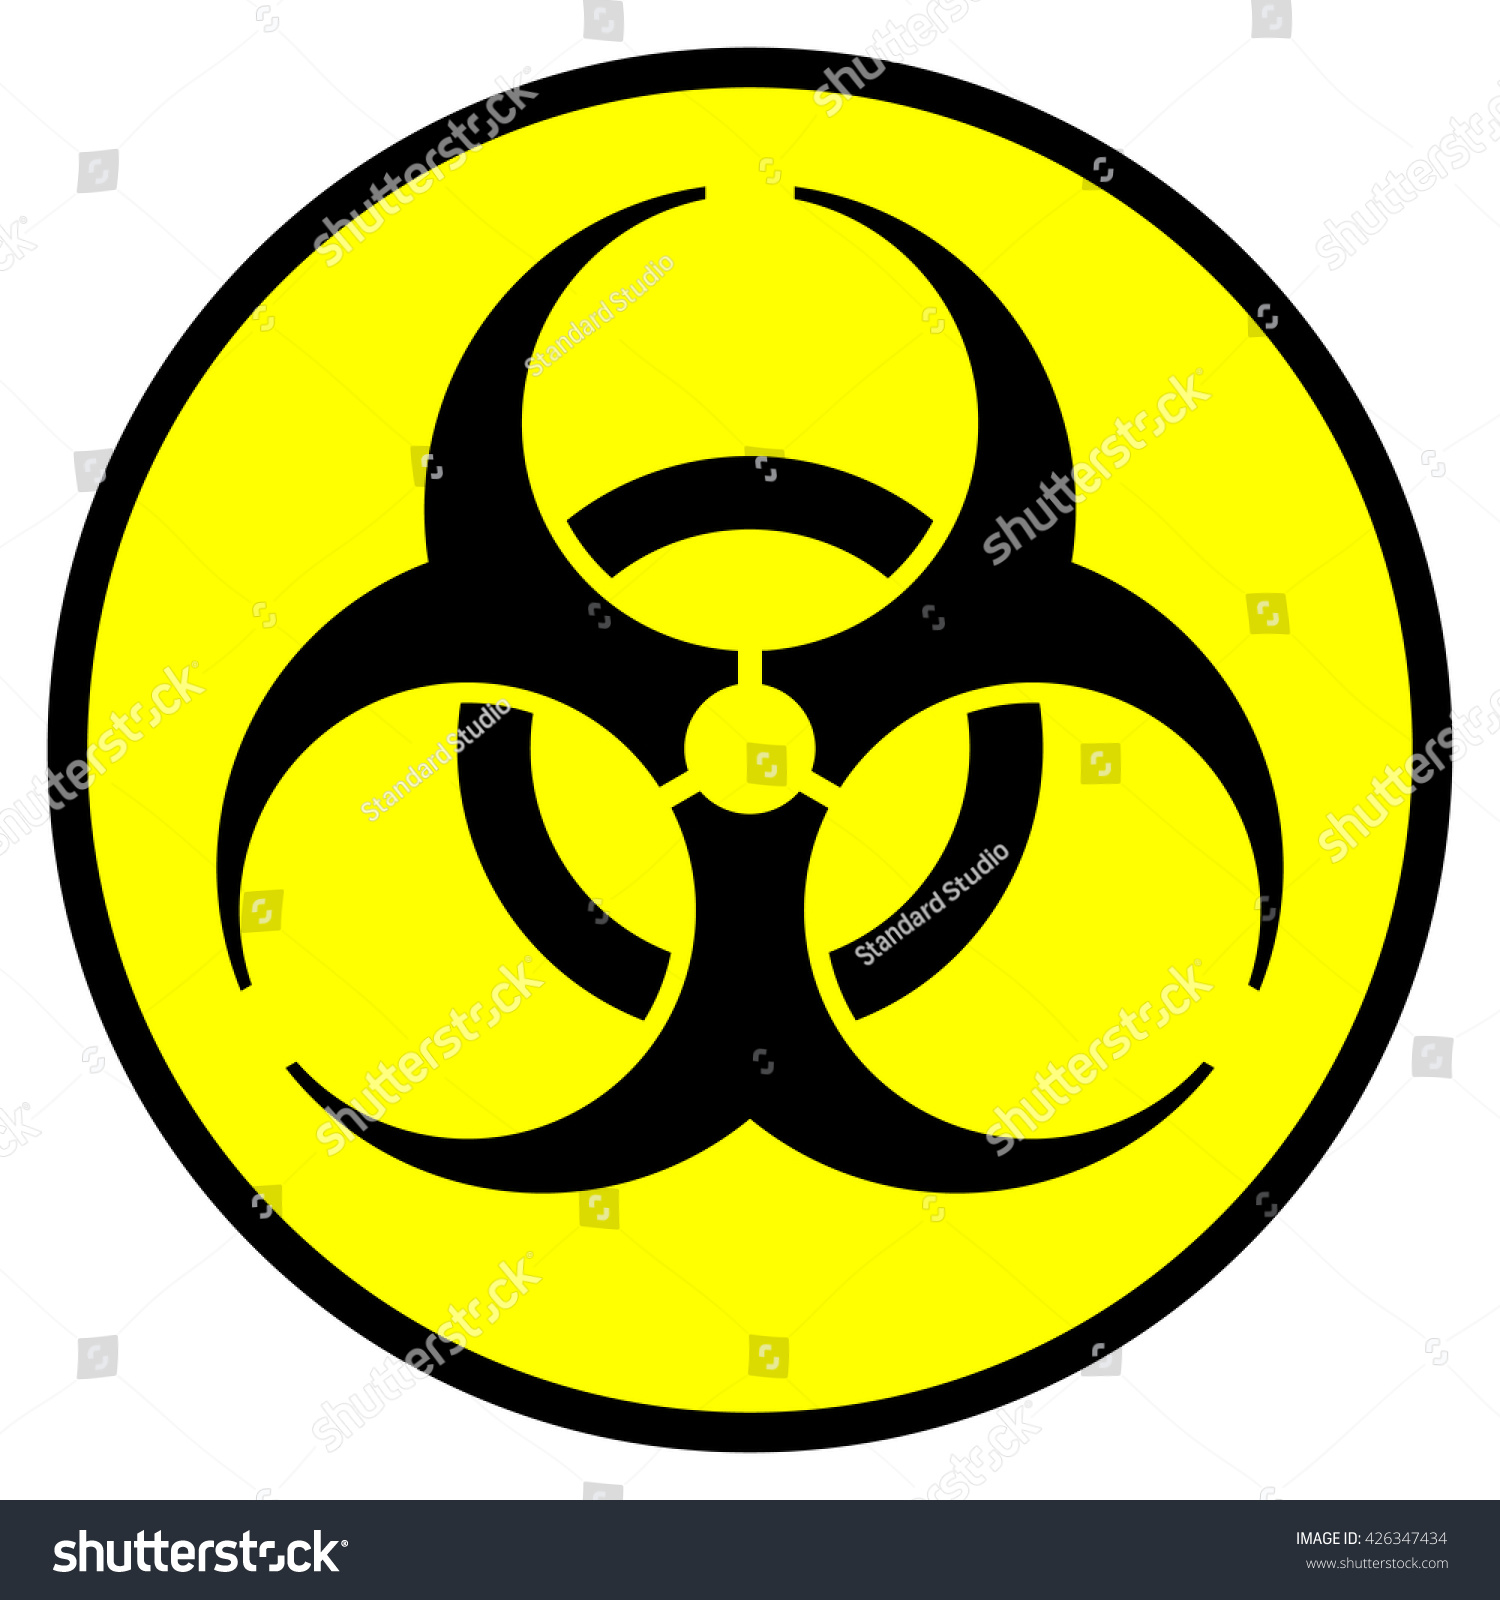 Biohazardous infectious materials symbol biohazard sign stock vector biohazardous infectious materials symbol biohazard sign vector illustration biocorpaavc Image collections